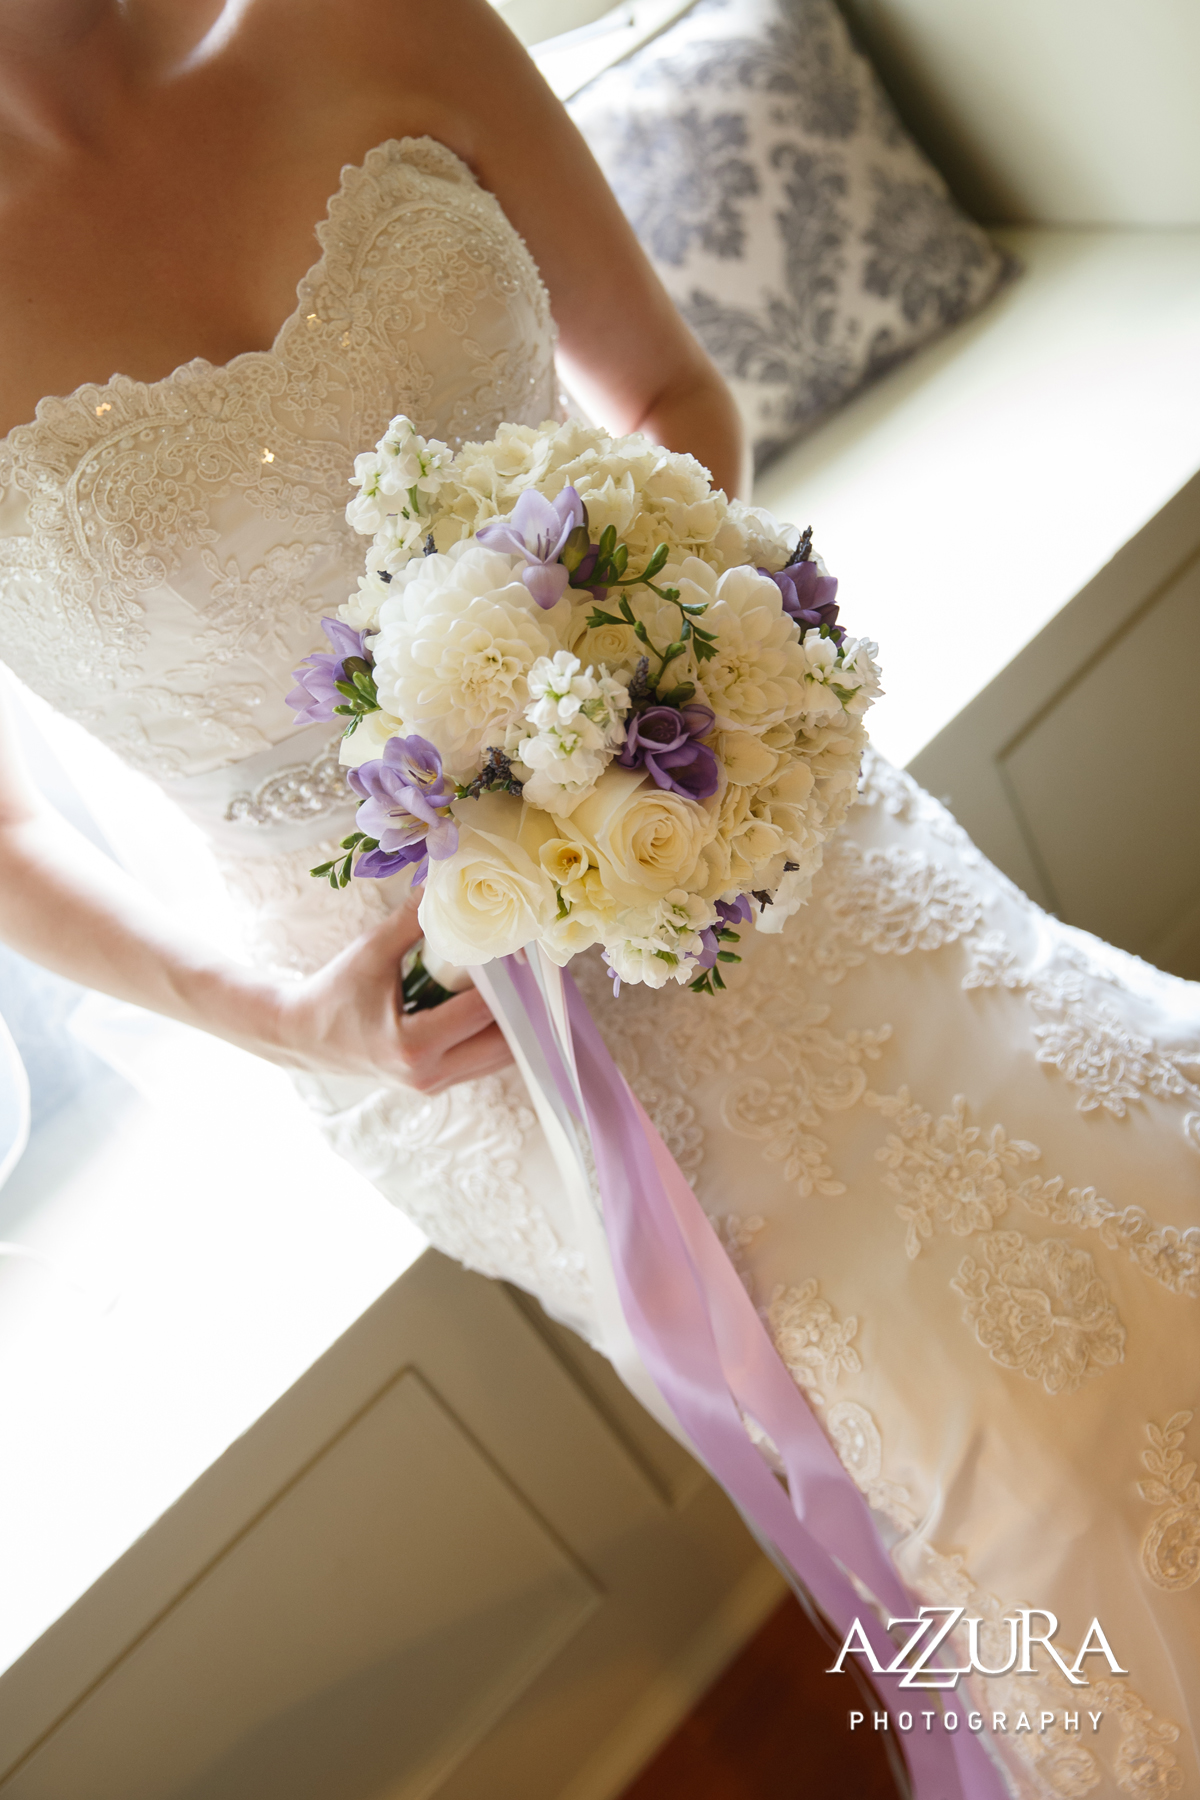 Laurel Creek Manor Wedding in Seattle | Lavender and white floral bouquet with ribbon | Perfectly Posh Events, Seattle Wedding Planner | Azzura Photography | Sublime Stems